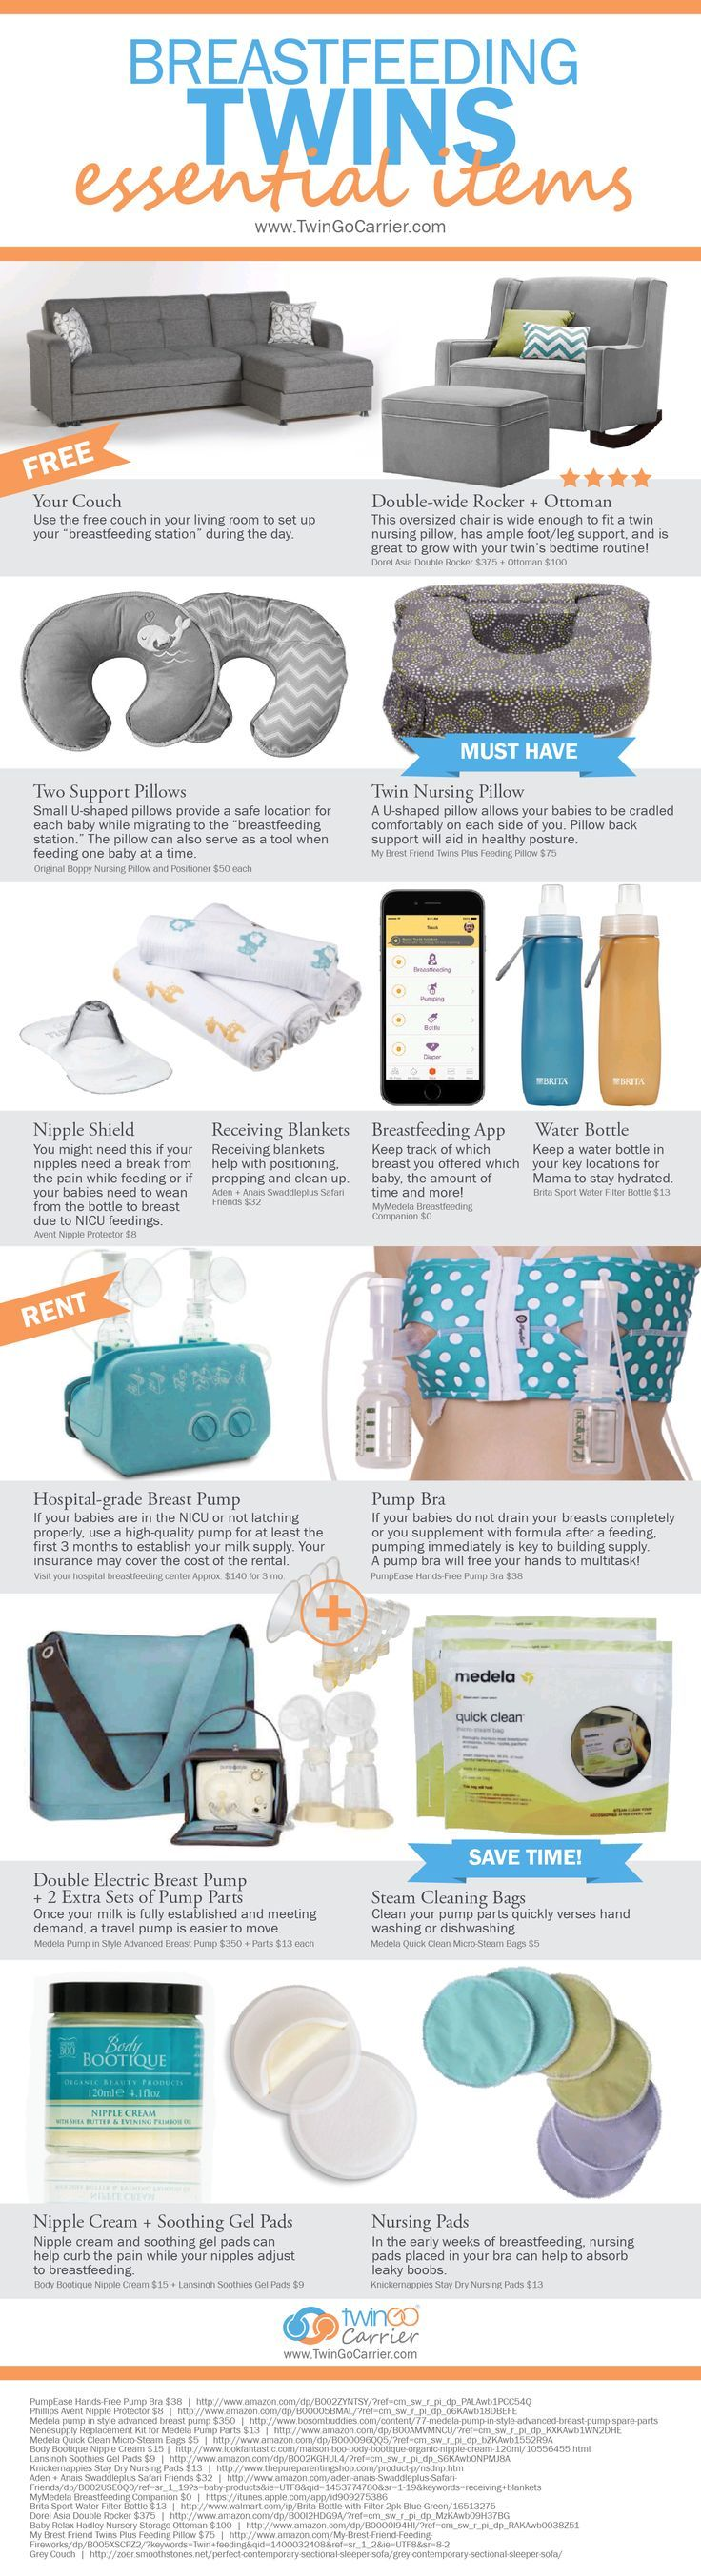 A MUST read if you are pregnant with twins! You CAN breastfeed your twins! These essential items will save you time, get you organized and increase milk supply.